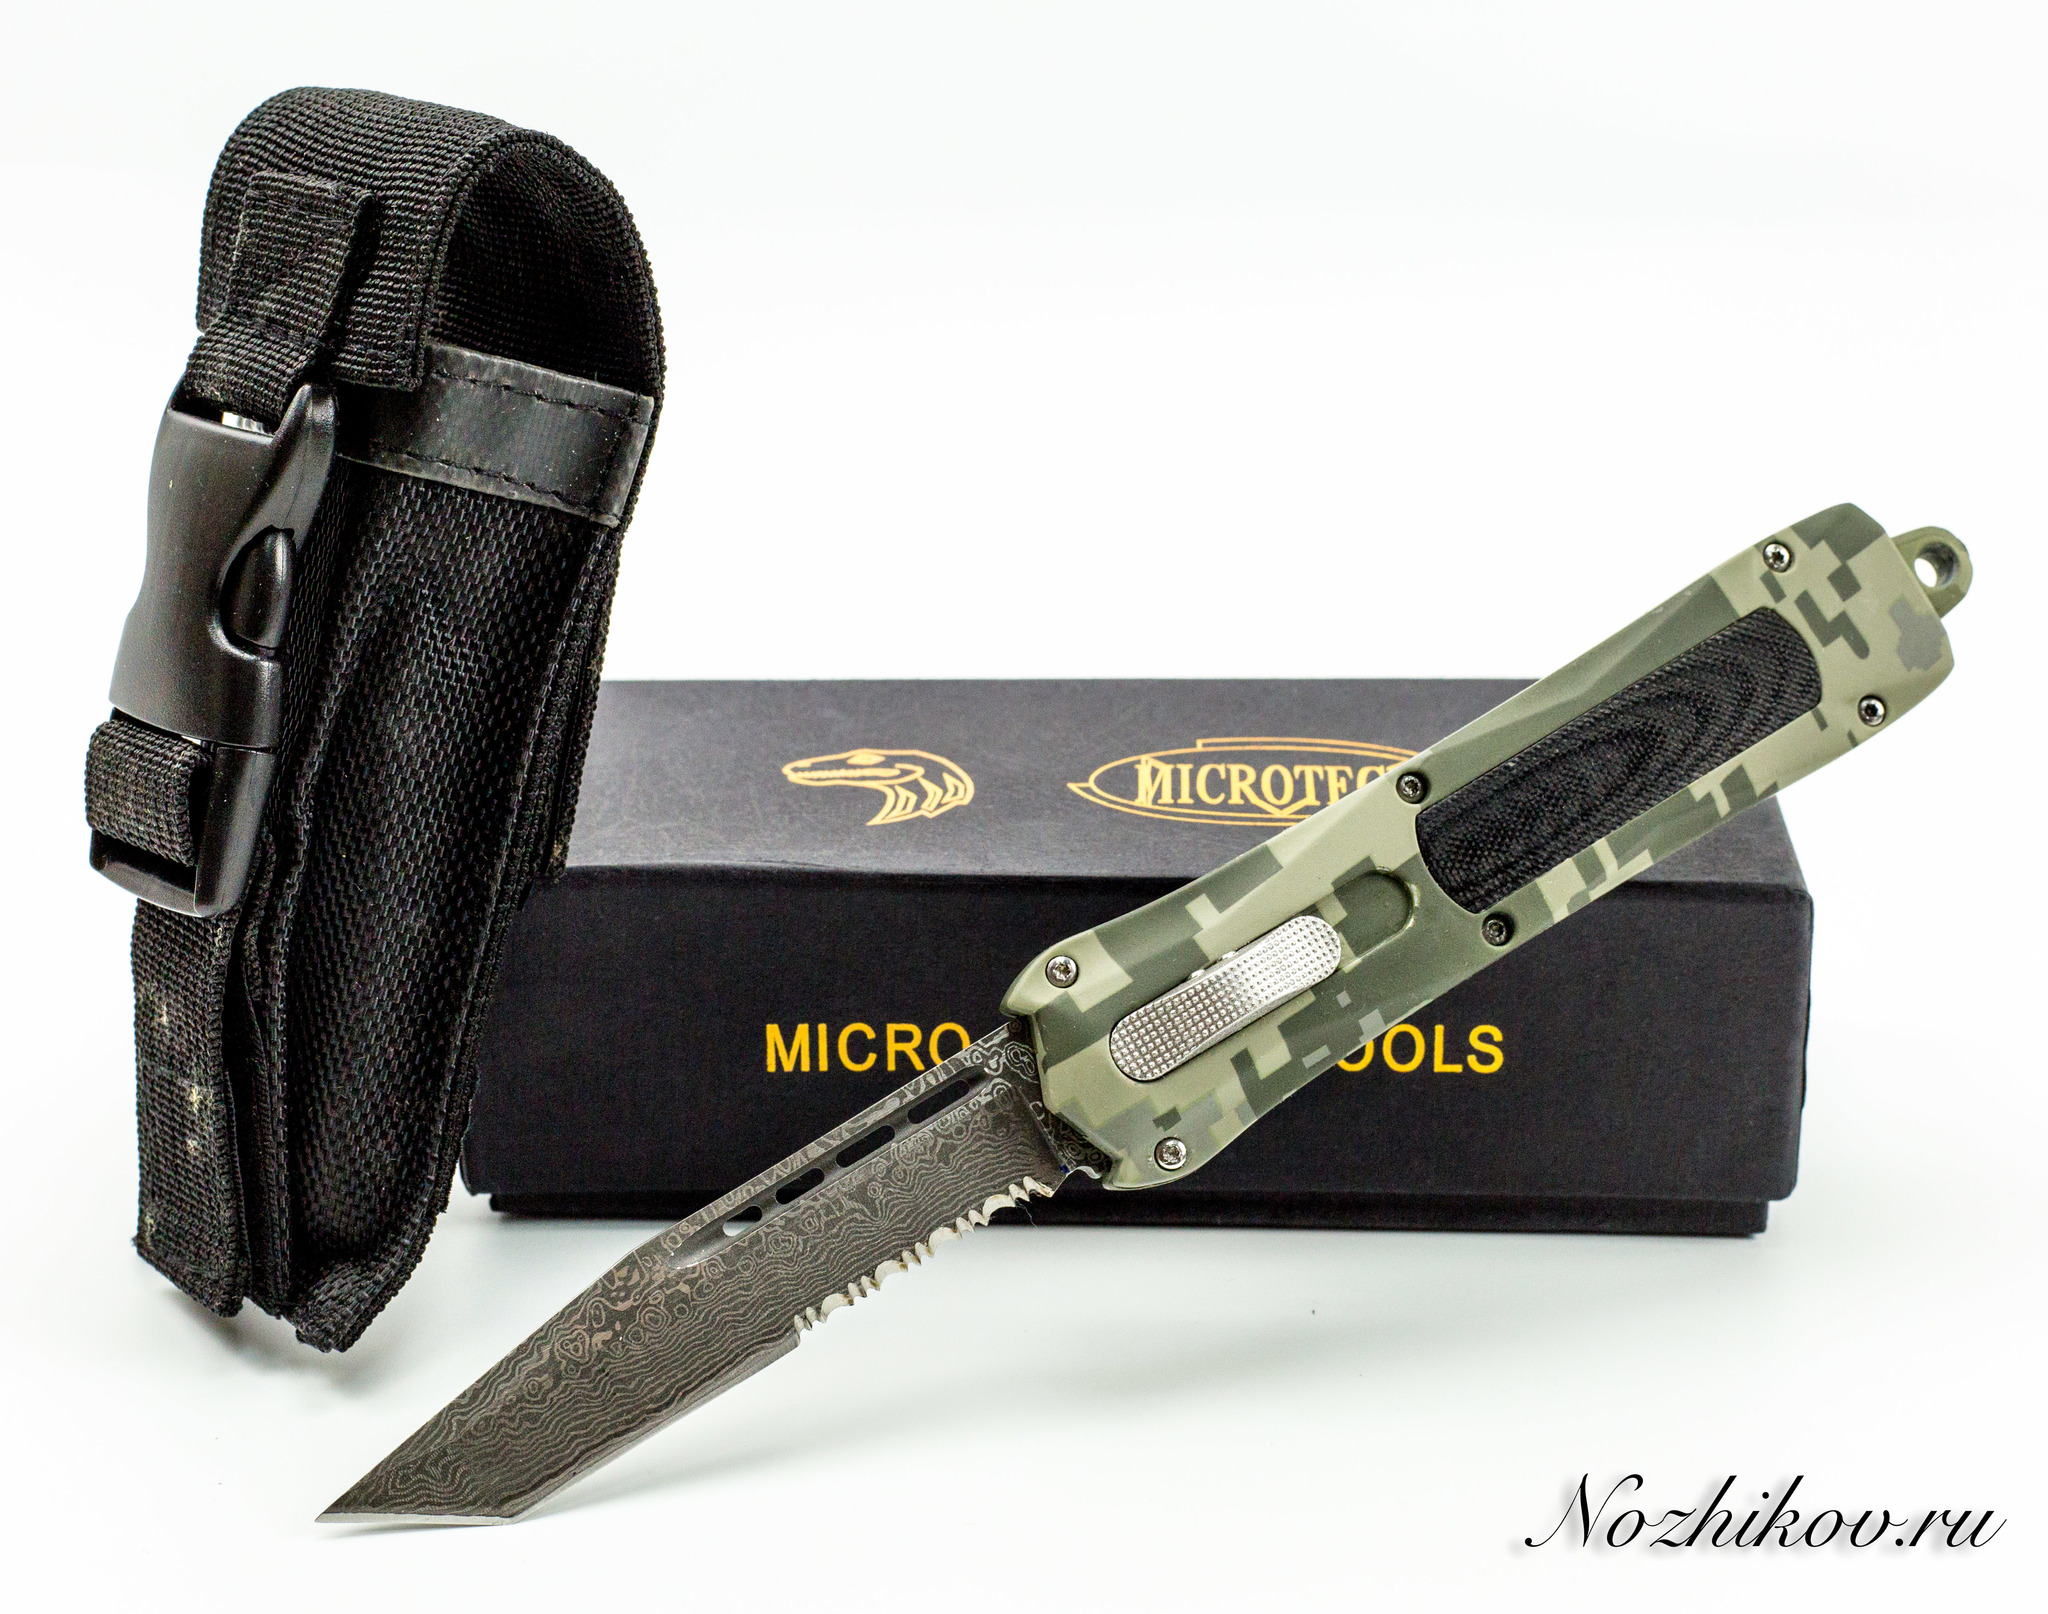 Нож Microtech Troodon, камуфляж-2 microtech troodon